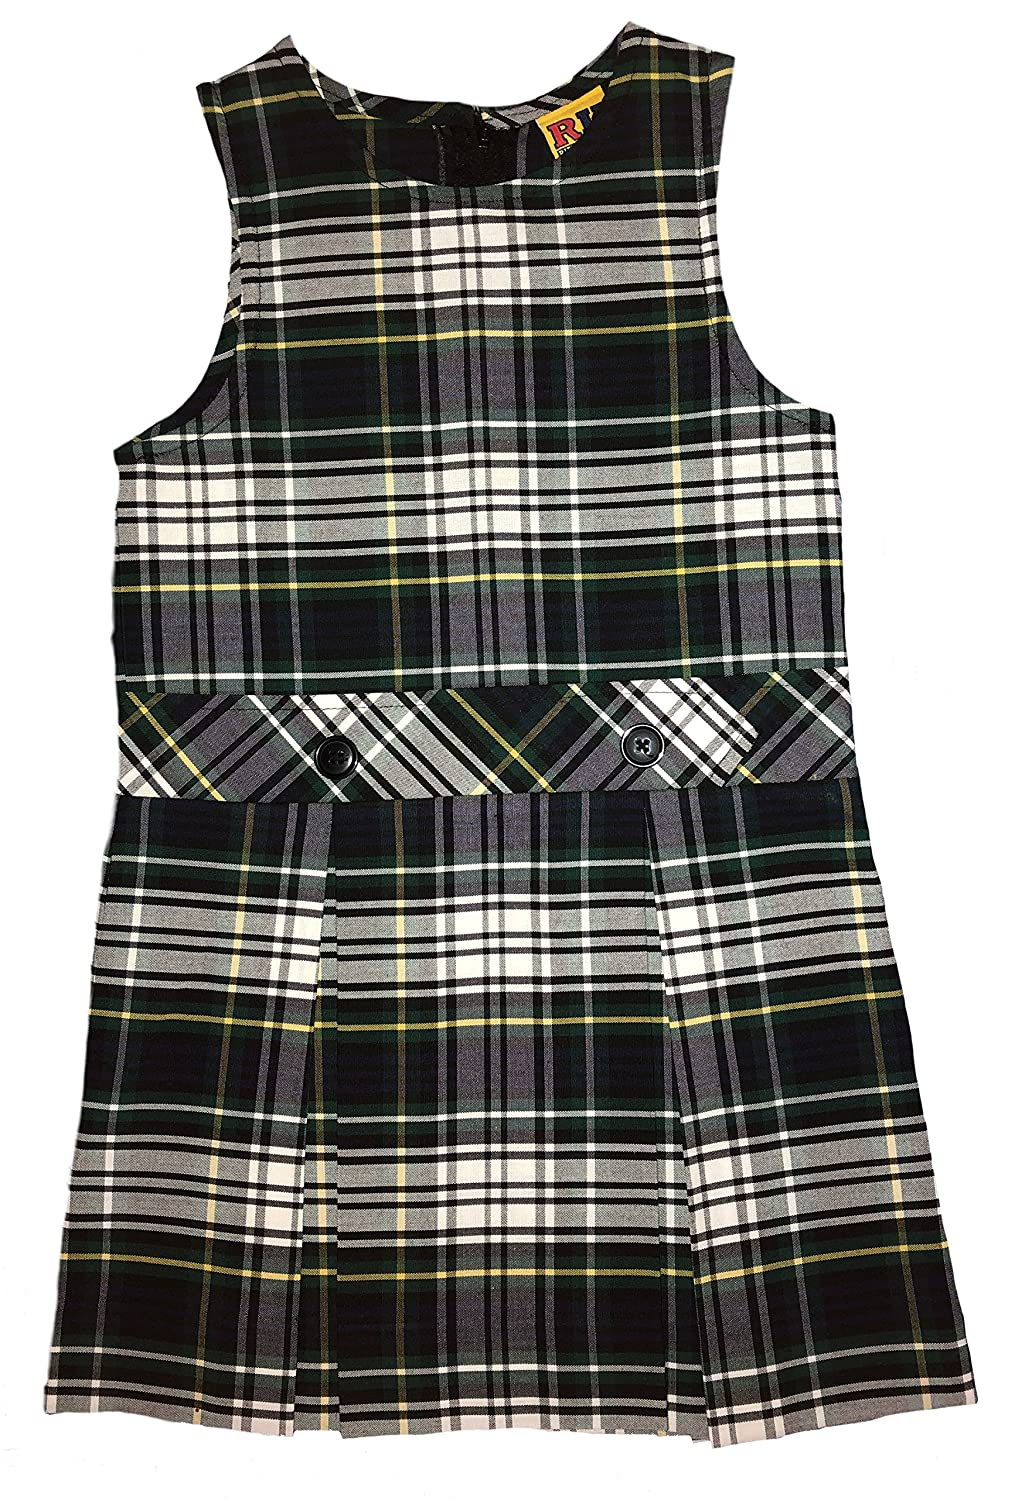 Rifle Girls Drop Waist Jumper Plaid 35 194350J035-PARENT